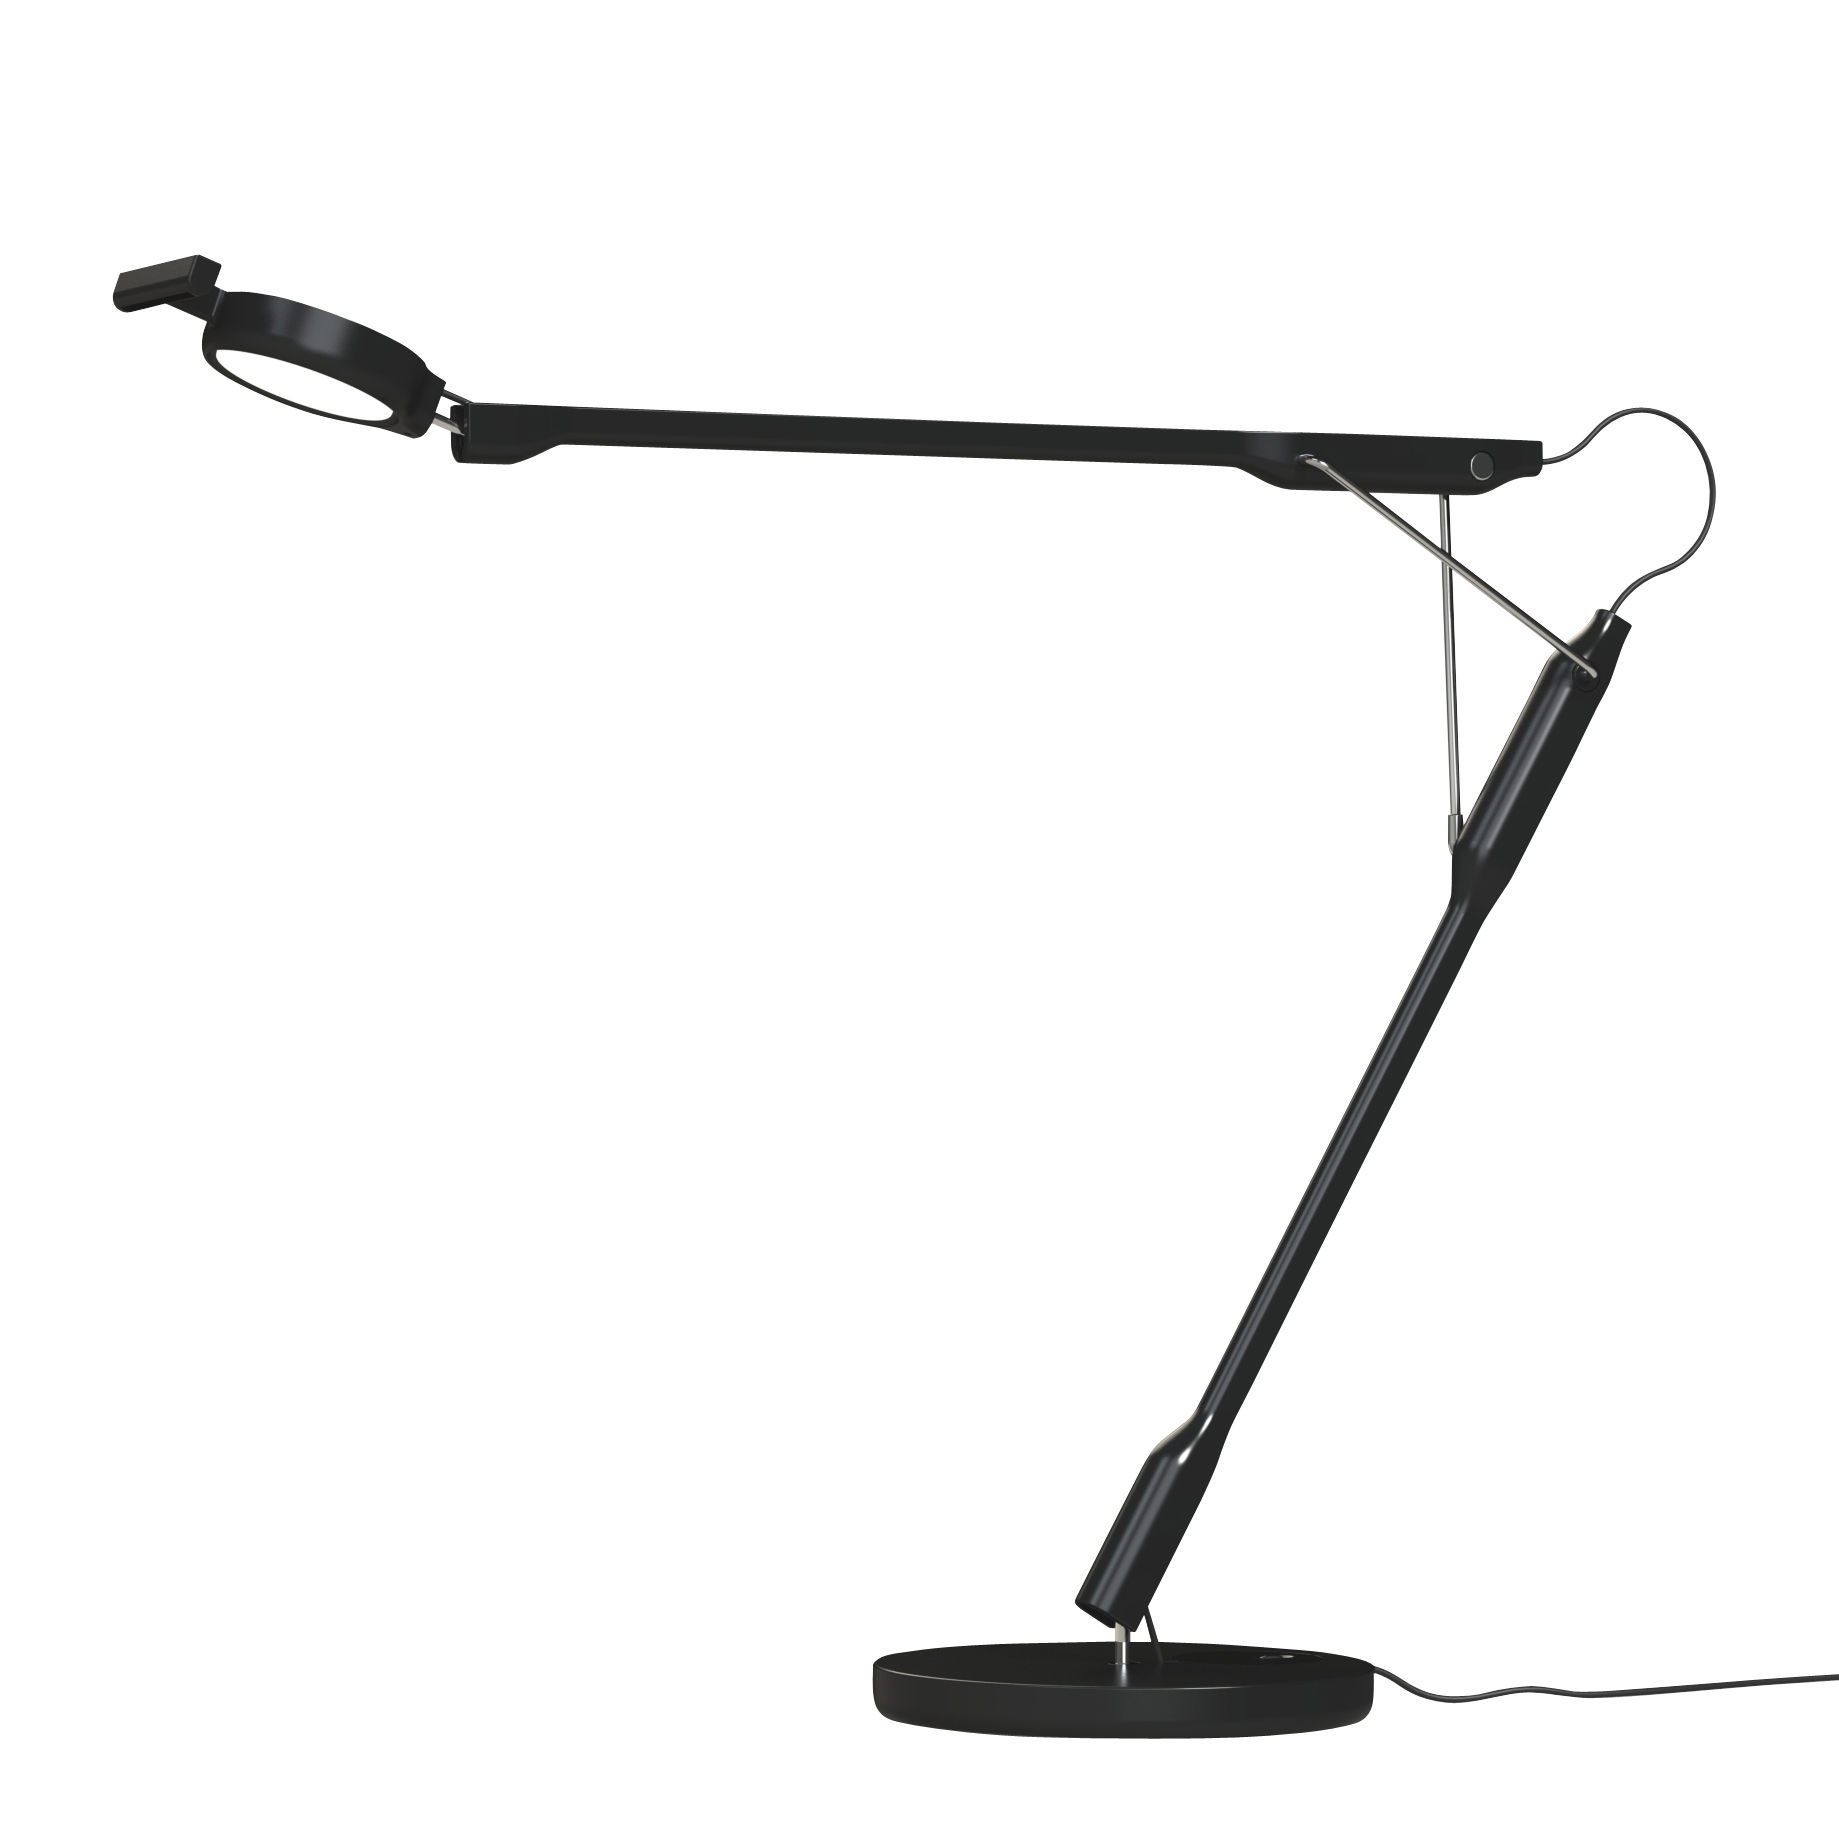 Lighting - Table Lamps - Tivedo LED Table lamp - / Orientable by Luceplan - Black - Polycarbonate, Stainless steel, Thermoplastic